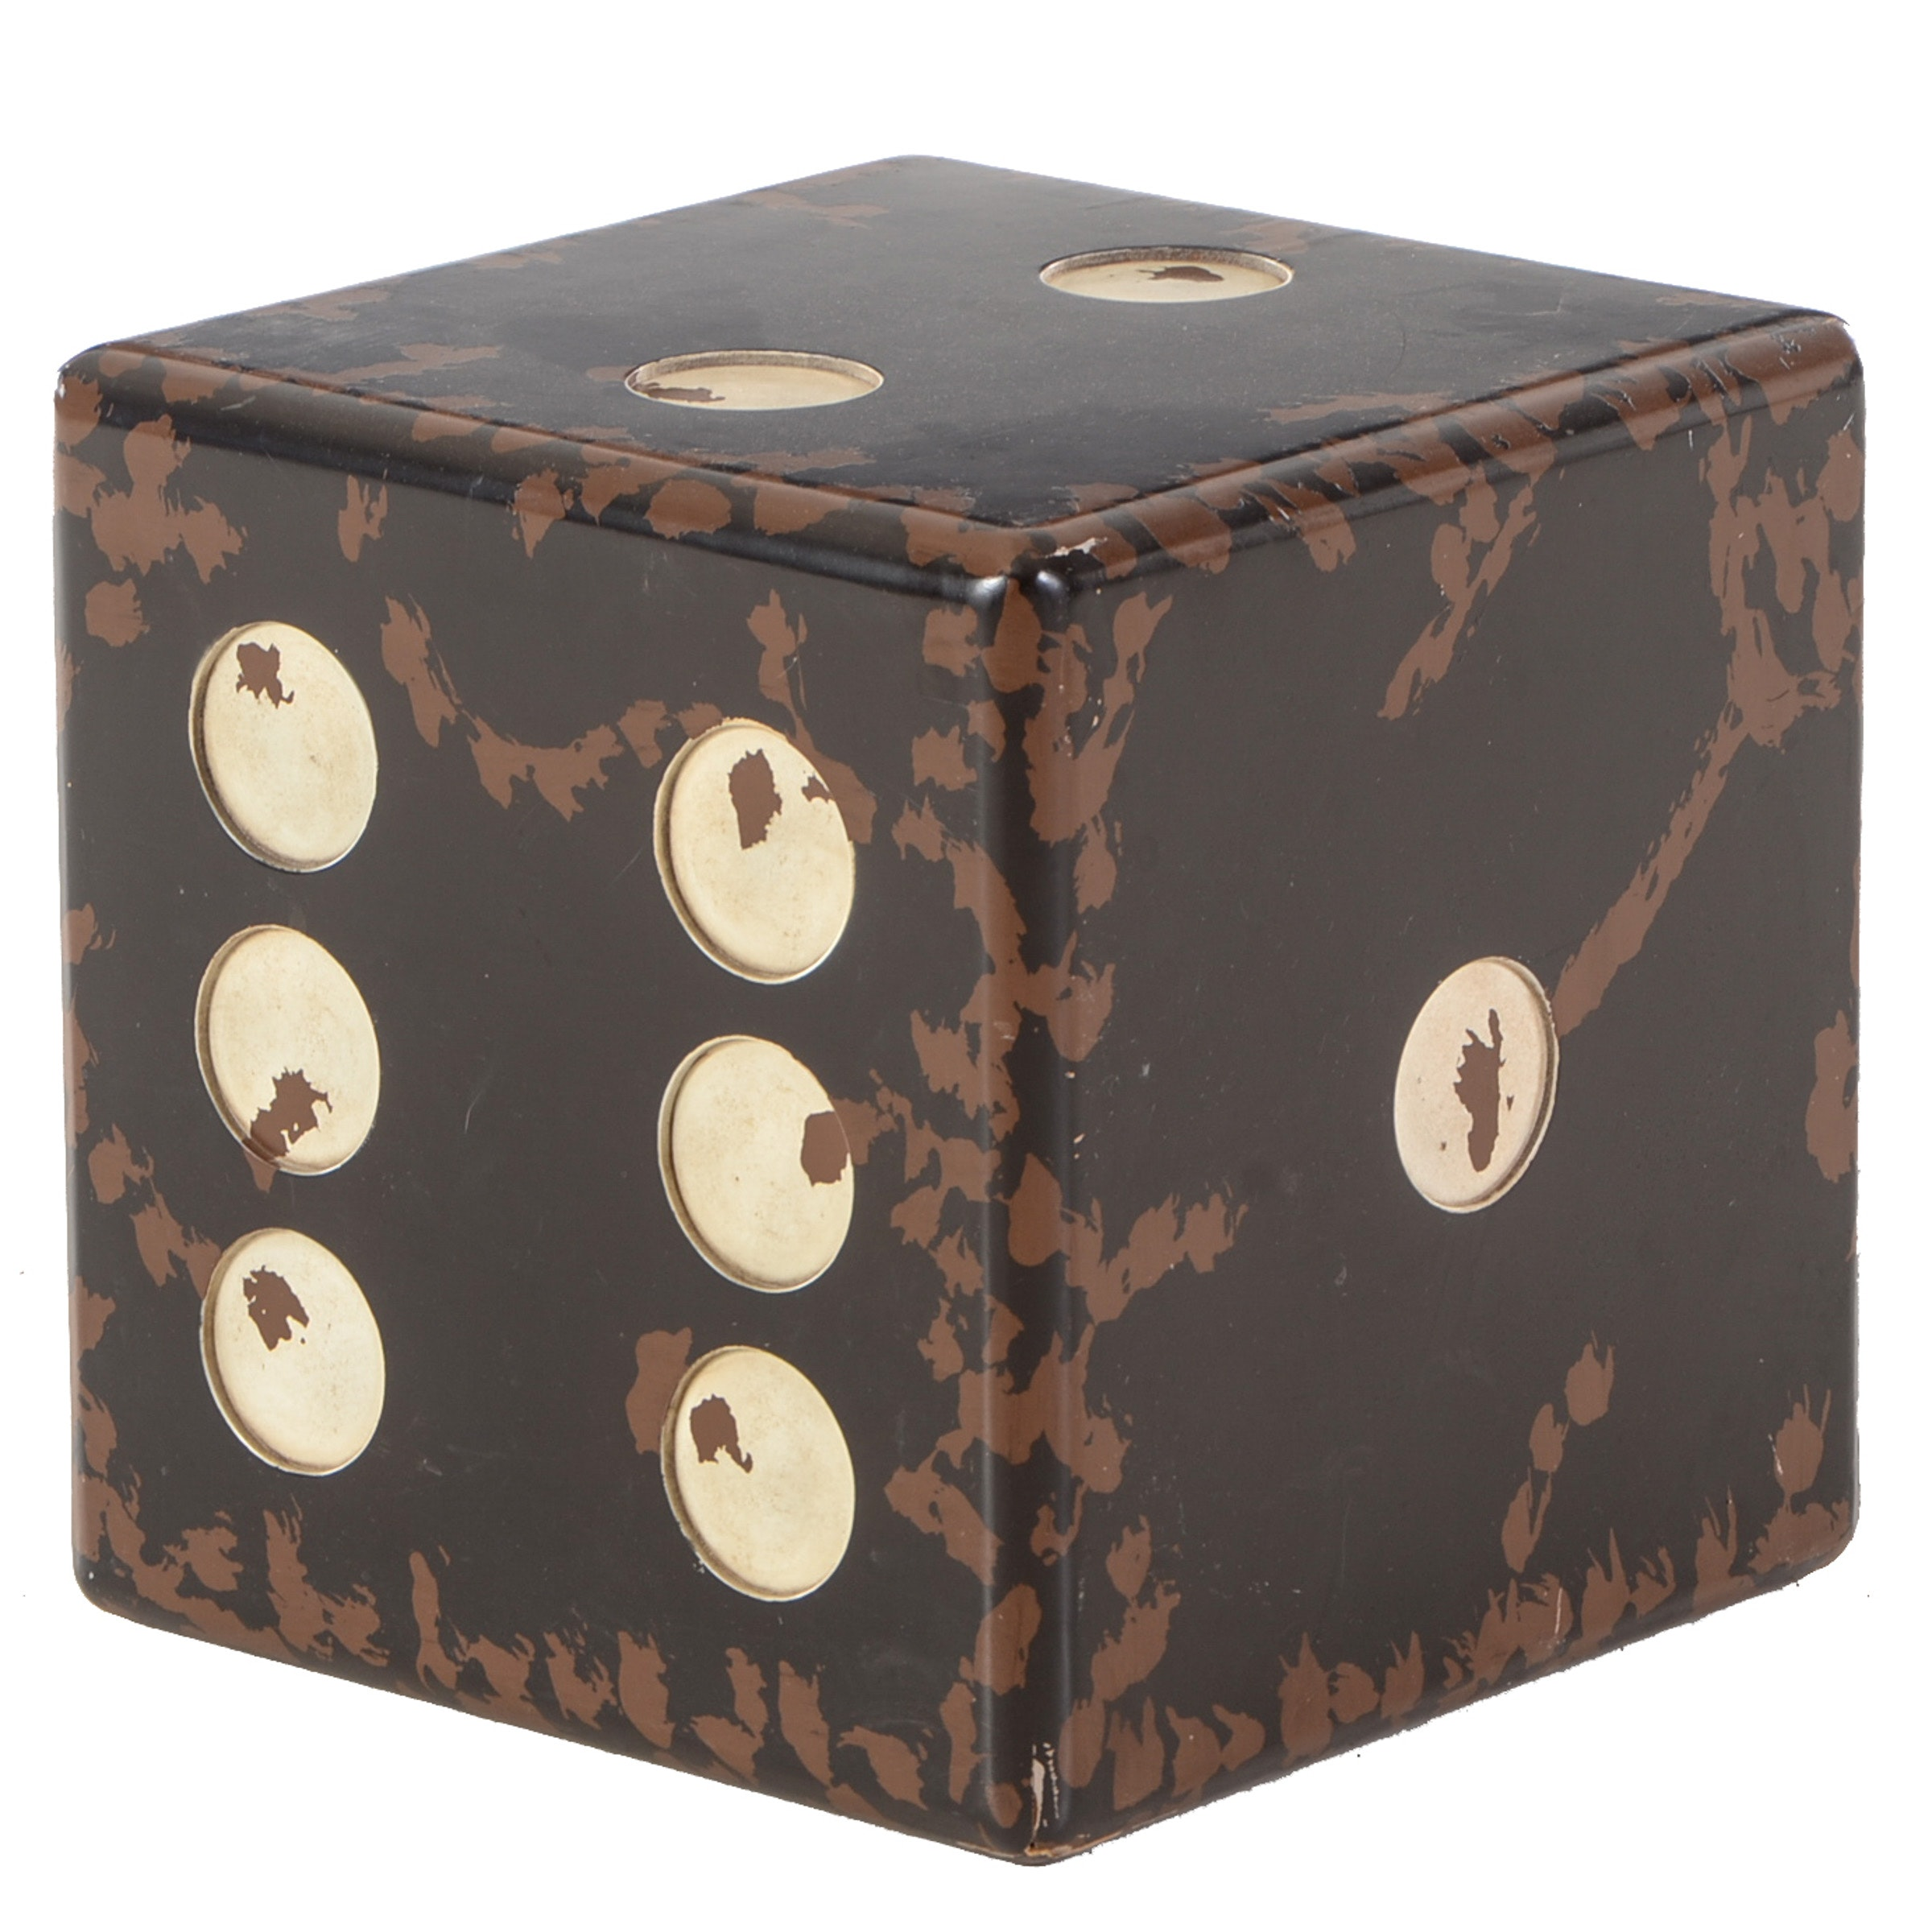 Molded Die (Dice) Accent Table